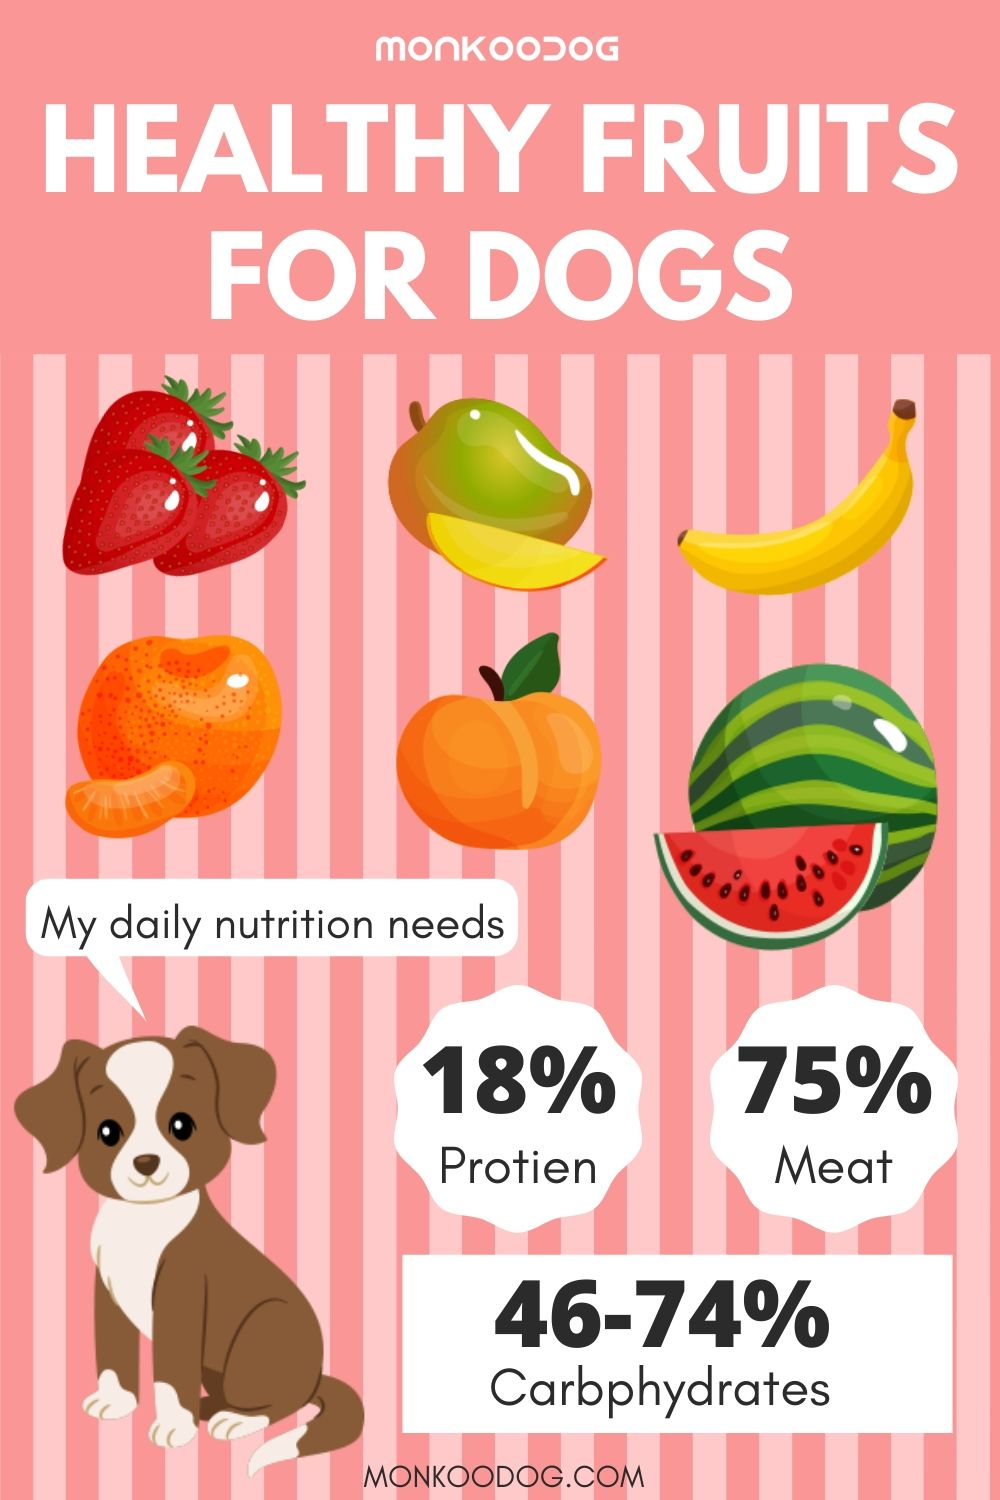 HEALTHY FRUITS FOR DOGS